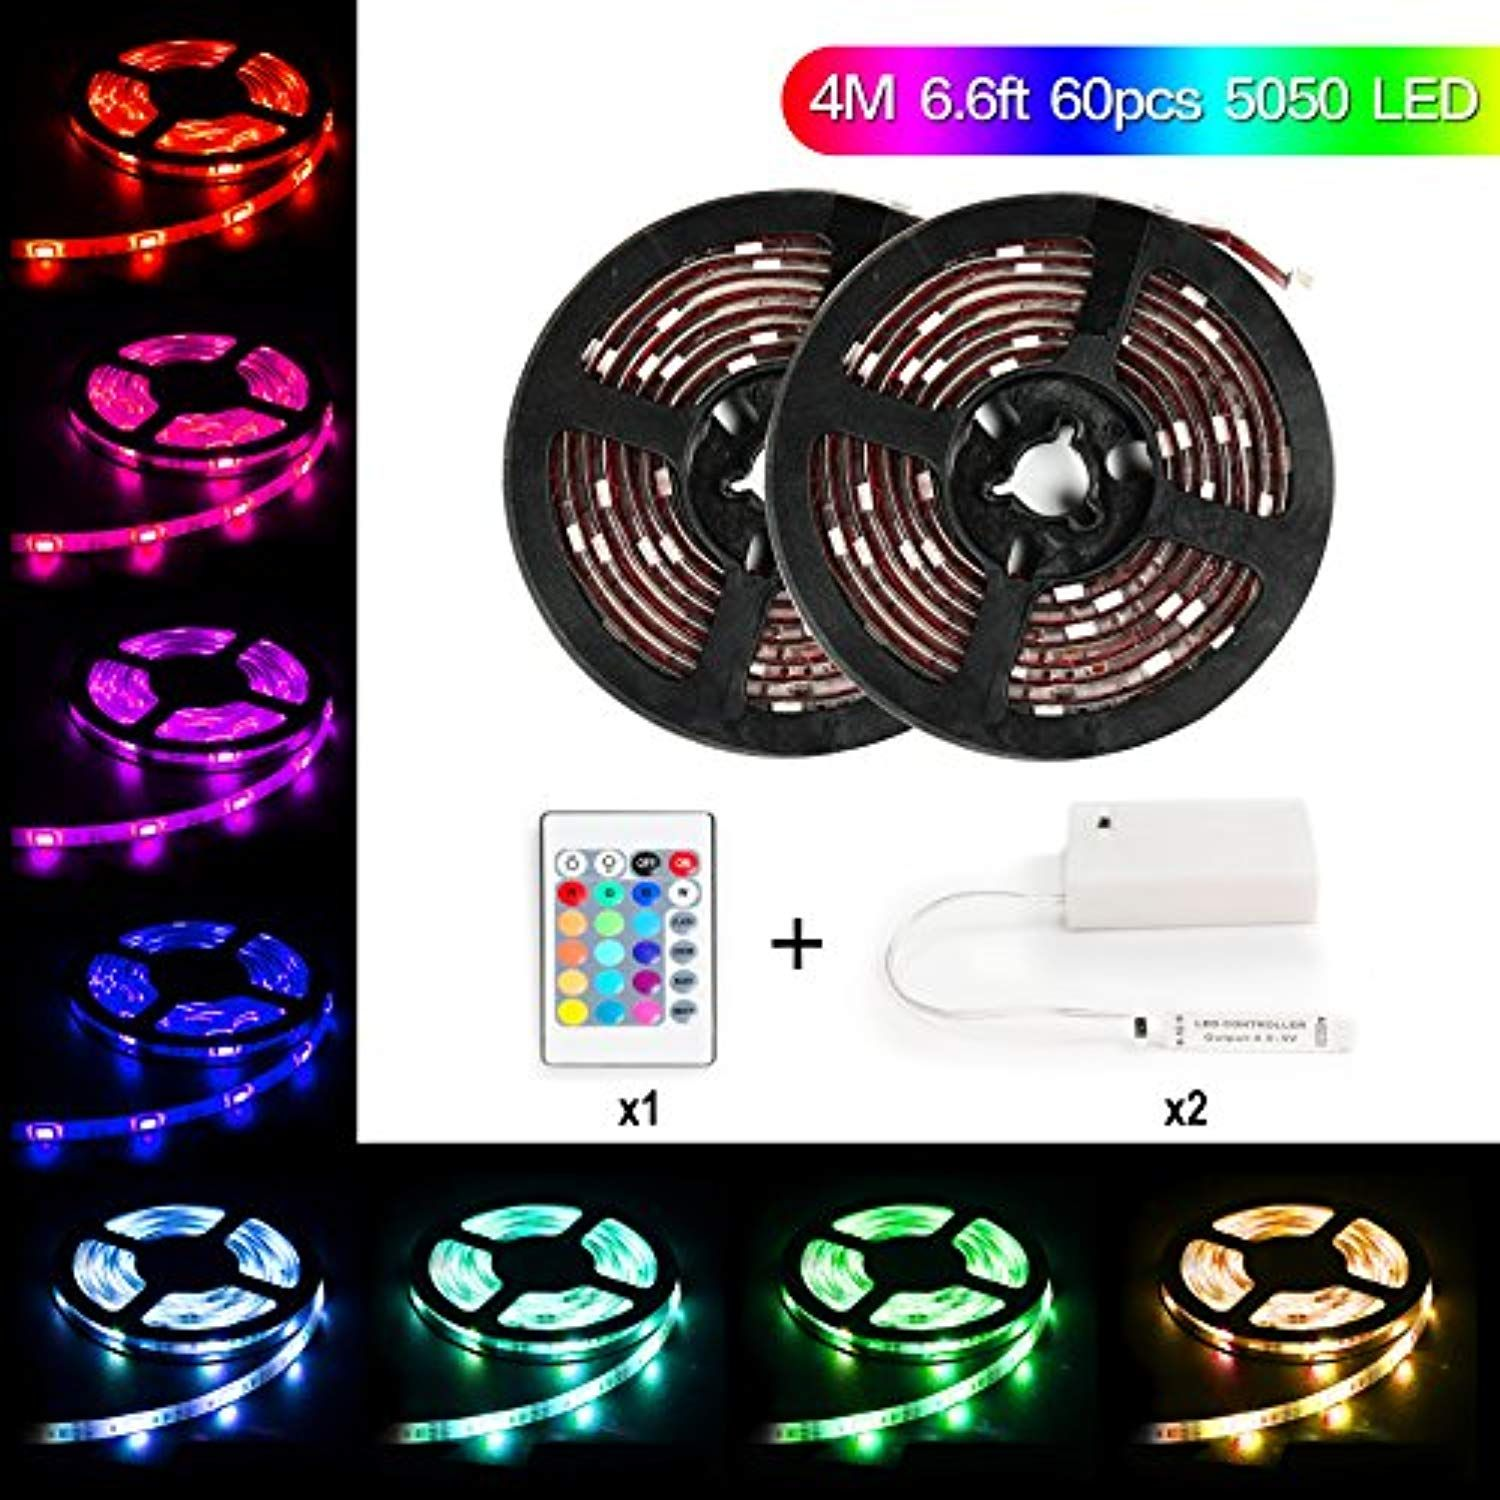 Auspice Changing Flexible Waterproof Controller In 2020 Led Rope Lights Led Strip Lighting Rope Light